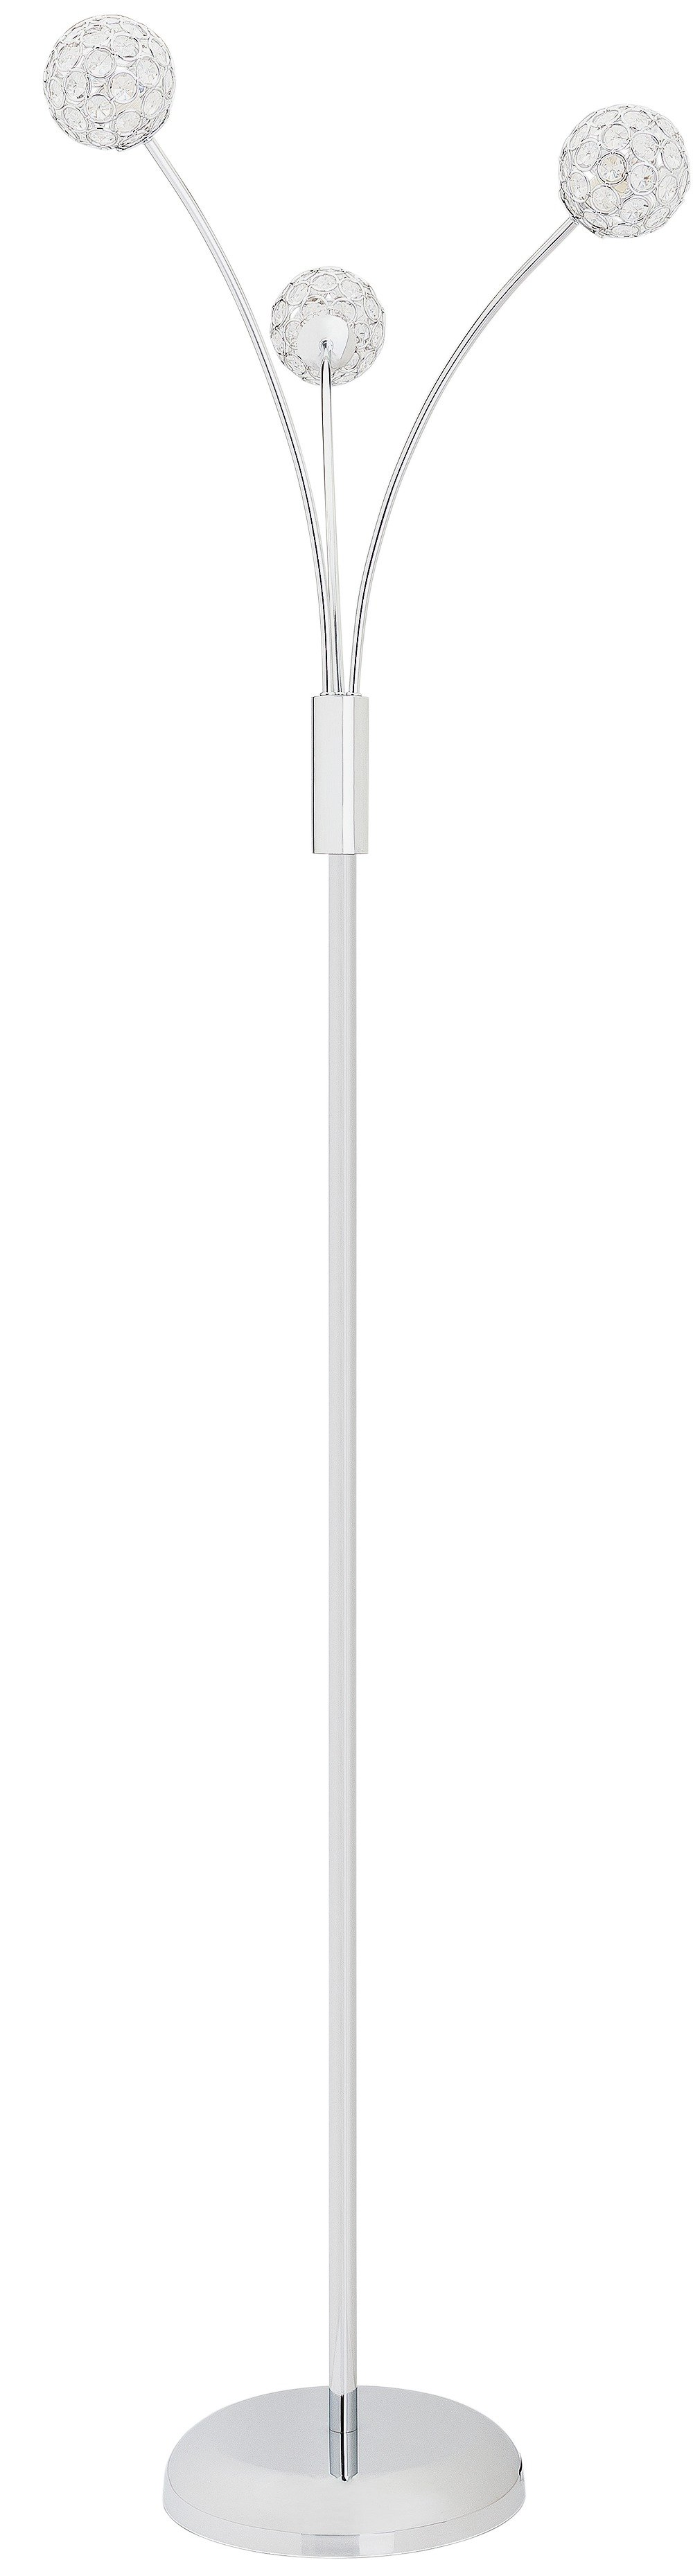 Argos Home Amelia 3 Light Beaded Globe Floor Lamp